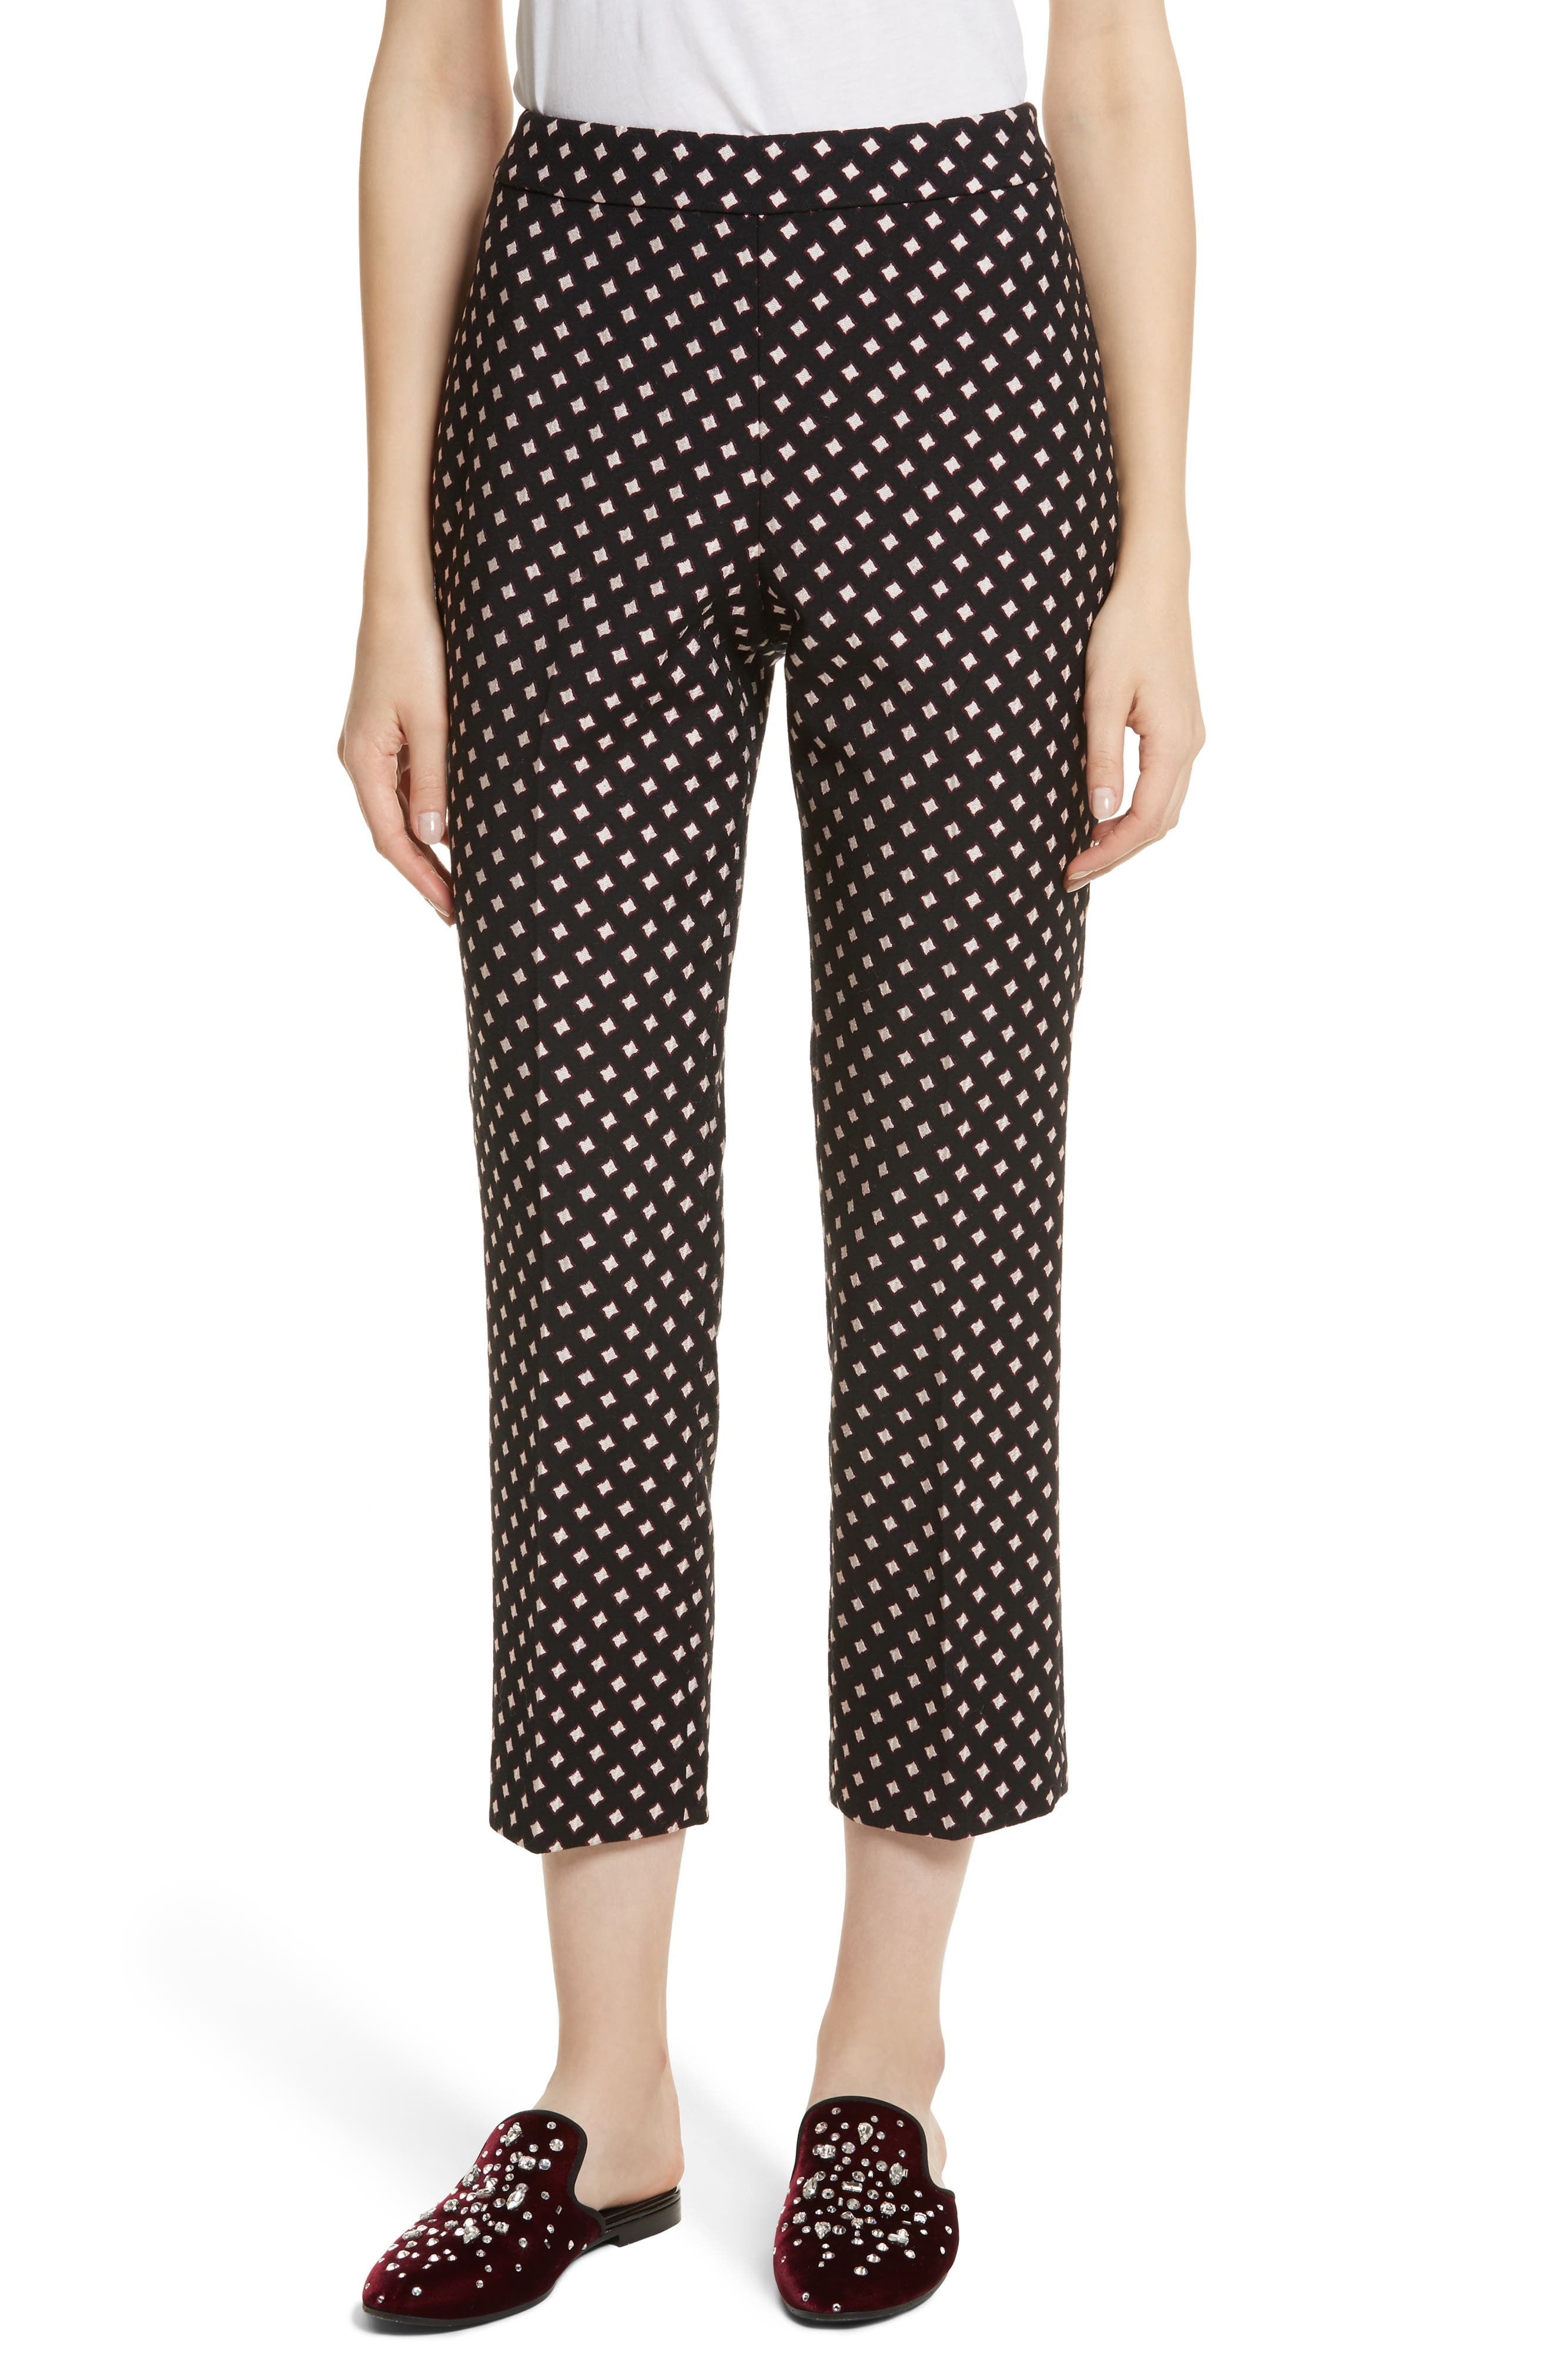 Alternate Image 1 Selected - kate spade new york cigarette pants